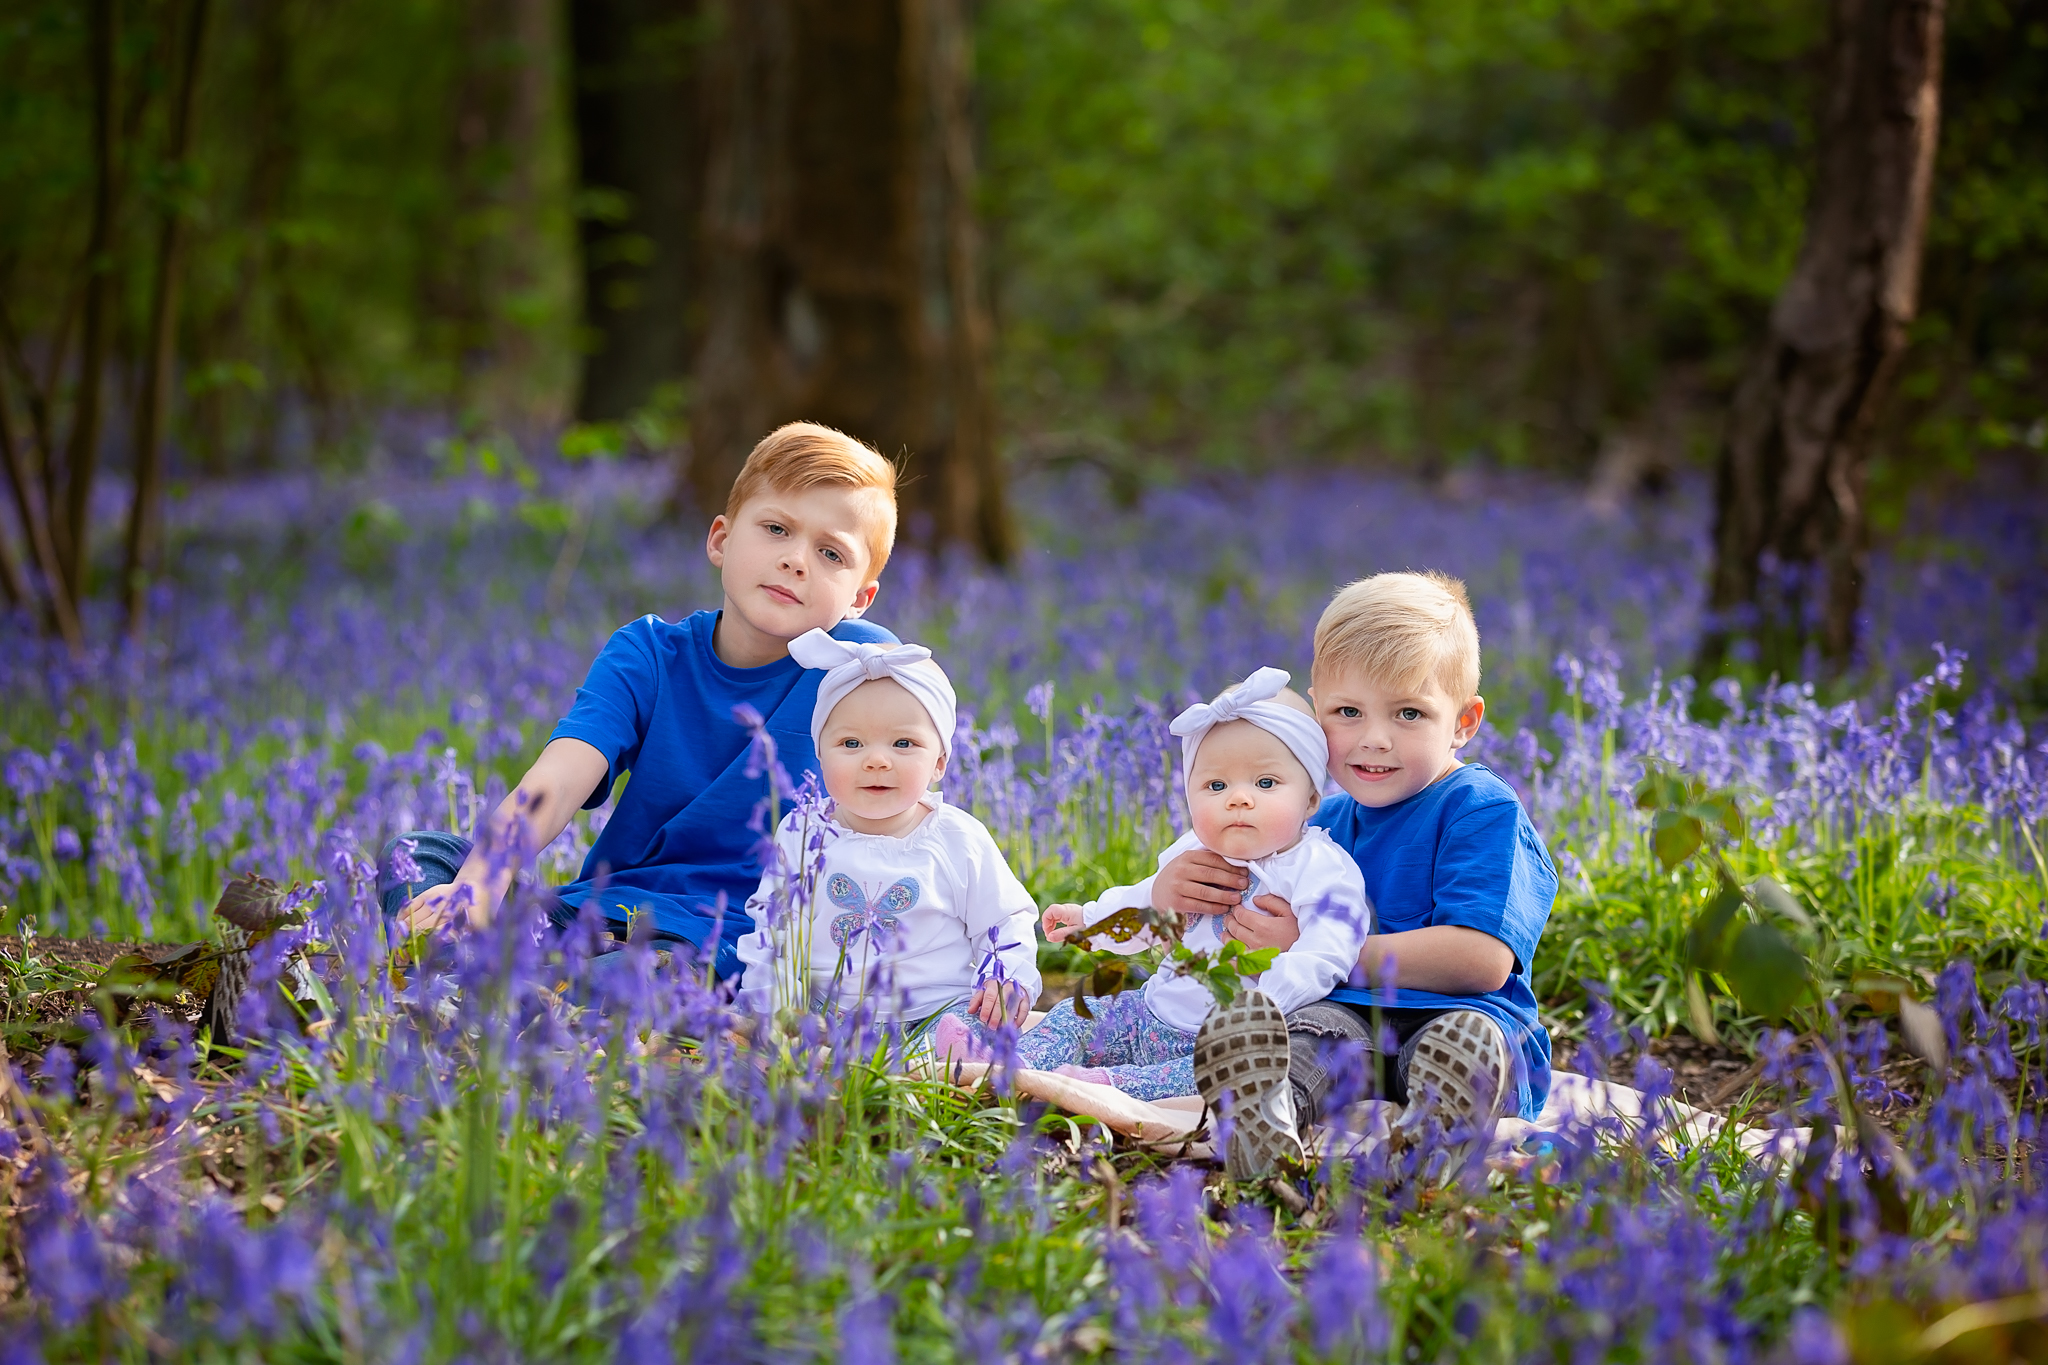 Children photographer Leeds, York, Harrogare, Bradford: twin baby girls with their older brothers during bluebell session in Leeds, West Yorkshire